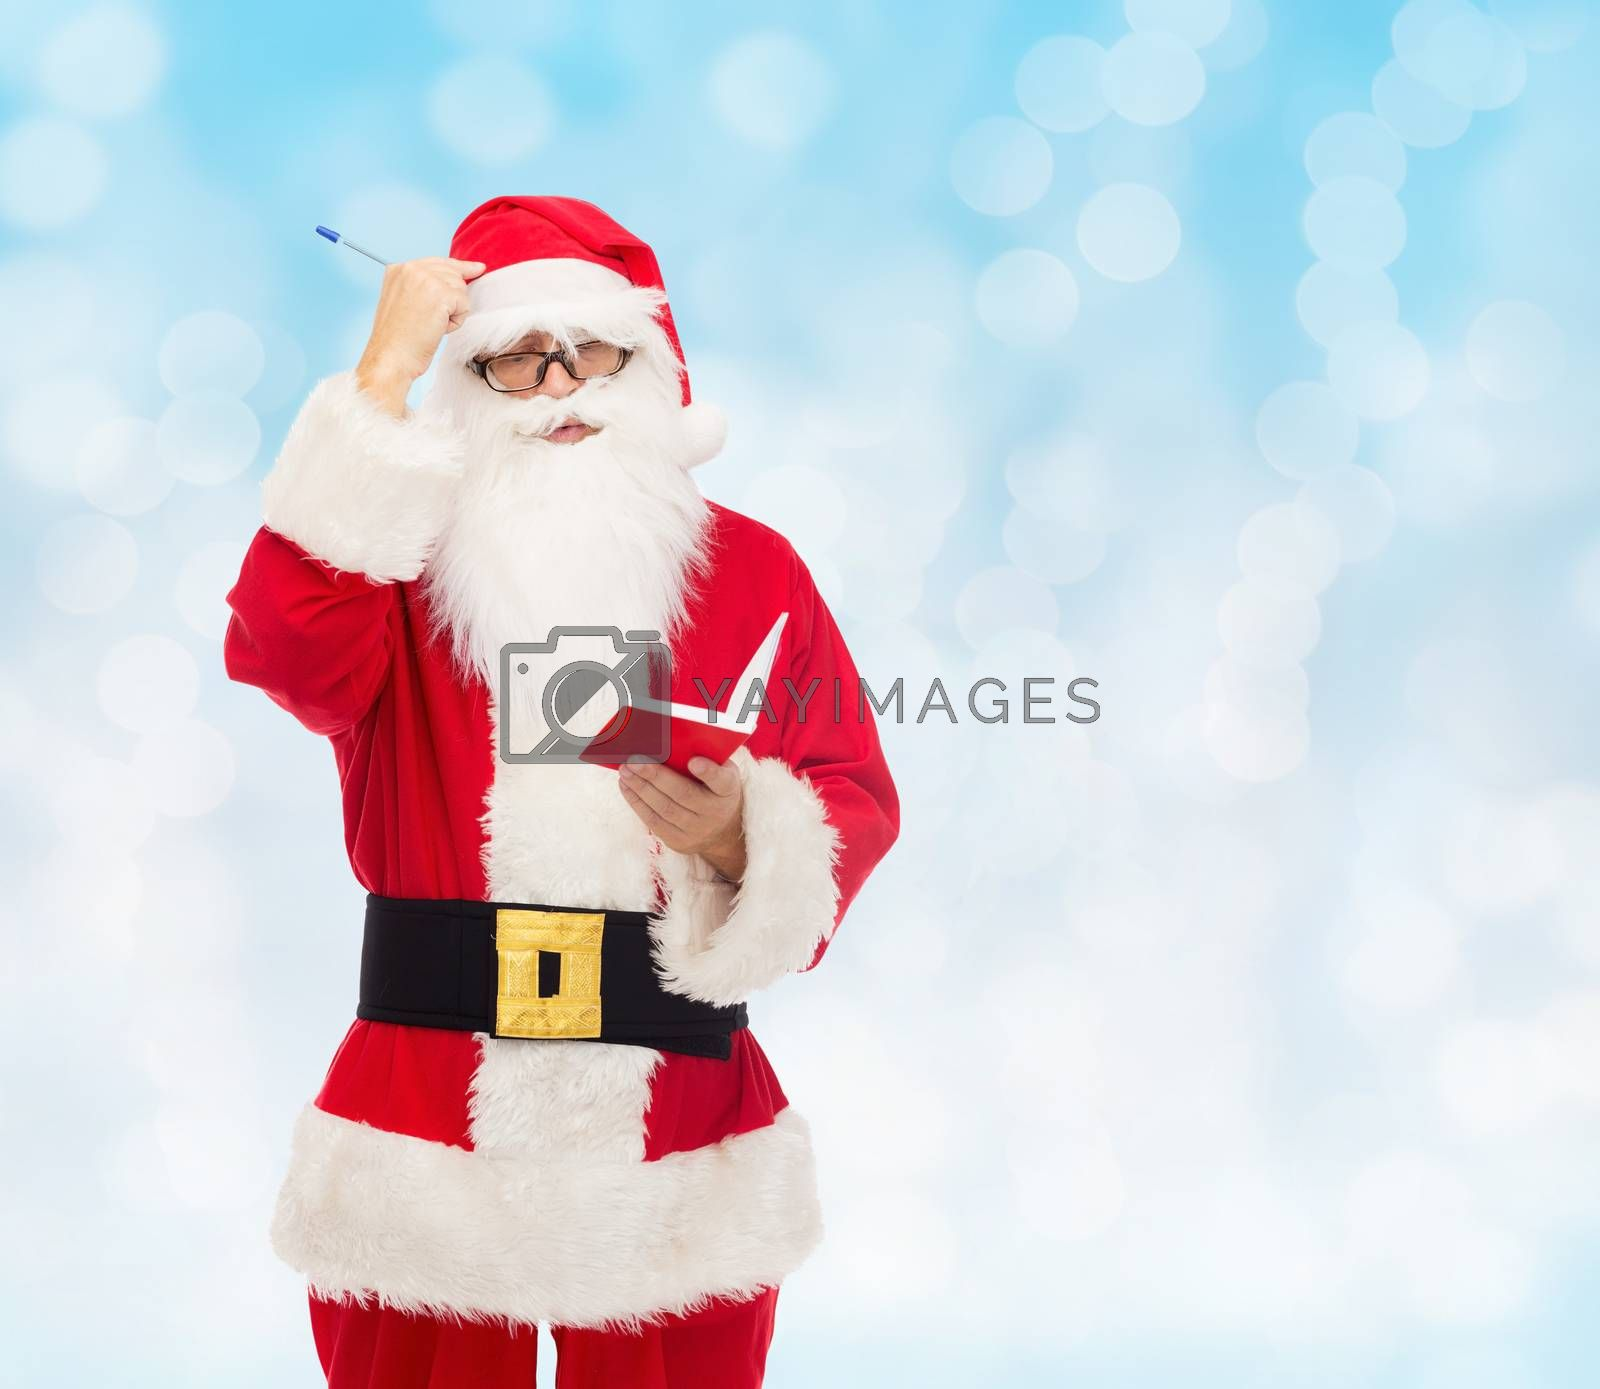 christmas, holidays and people concept - man in costume of santa claus with notepad and pen over blue lights background